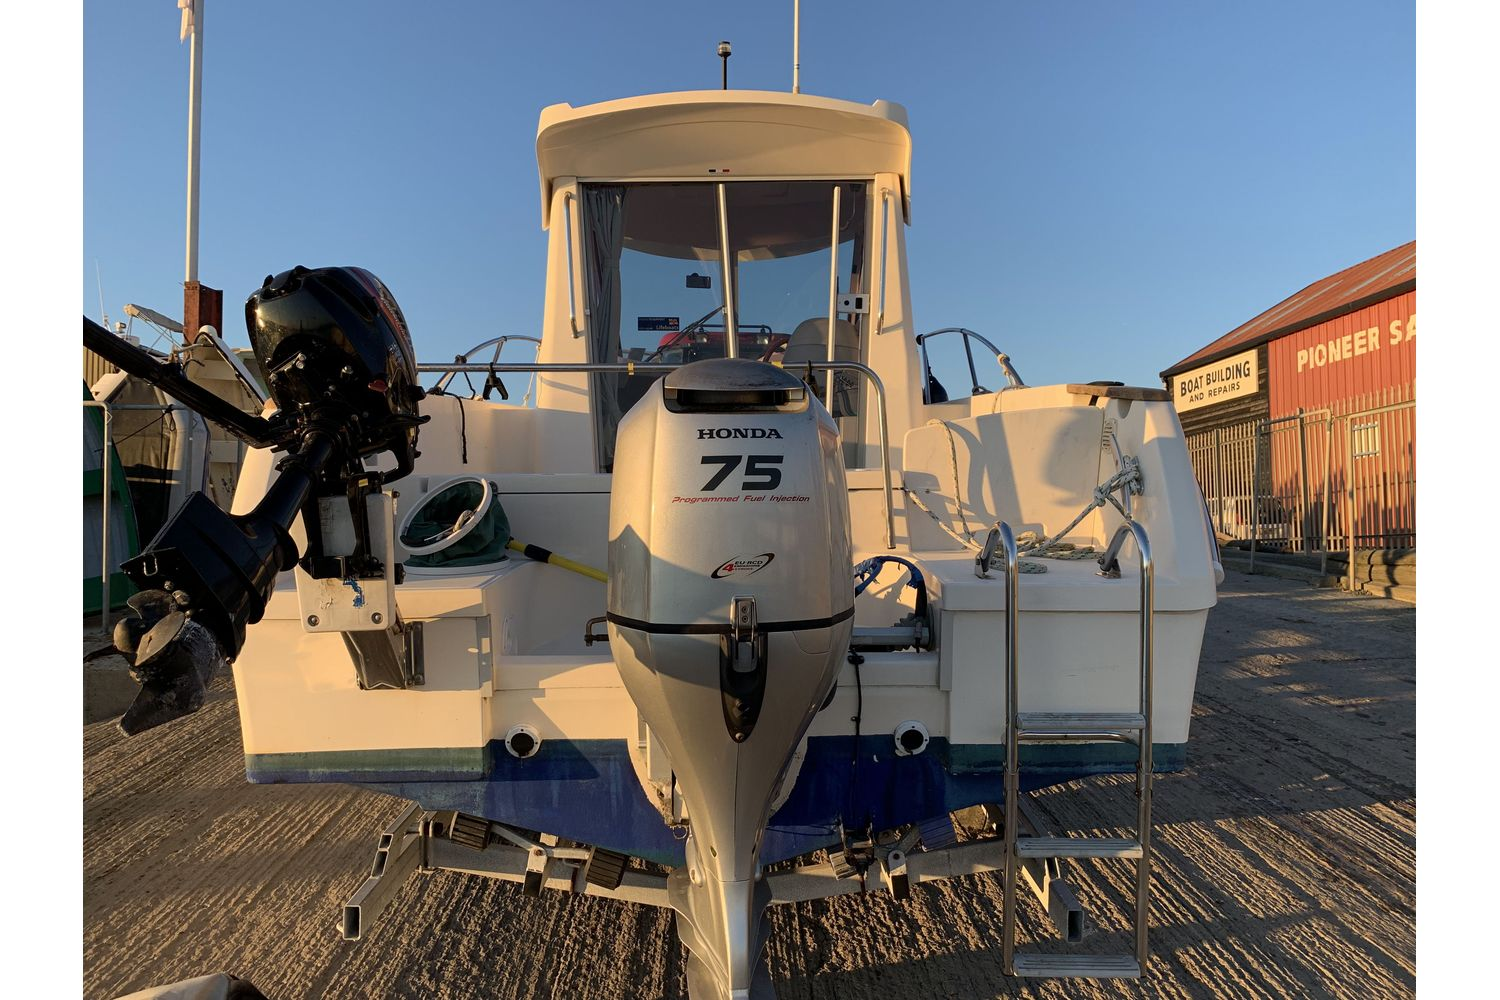 Ocqueteau 6.15 - Honda 75hp and Mariner auxiliary outboard